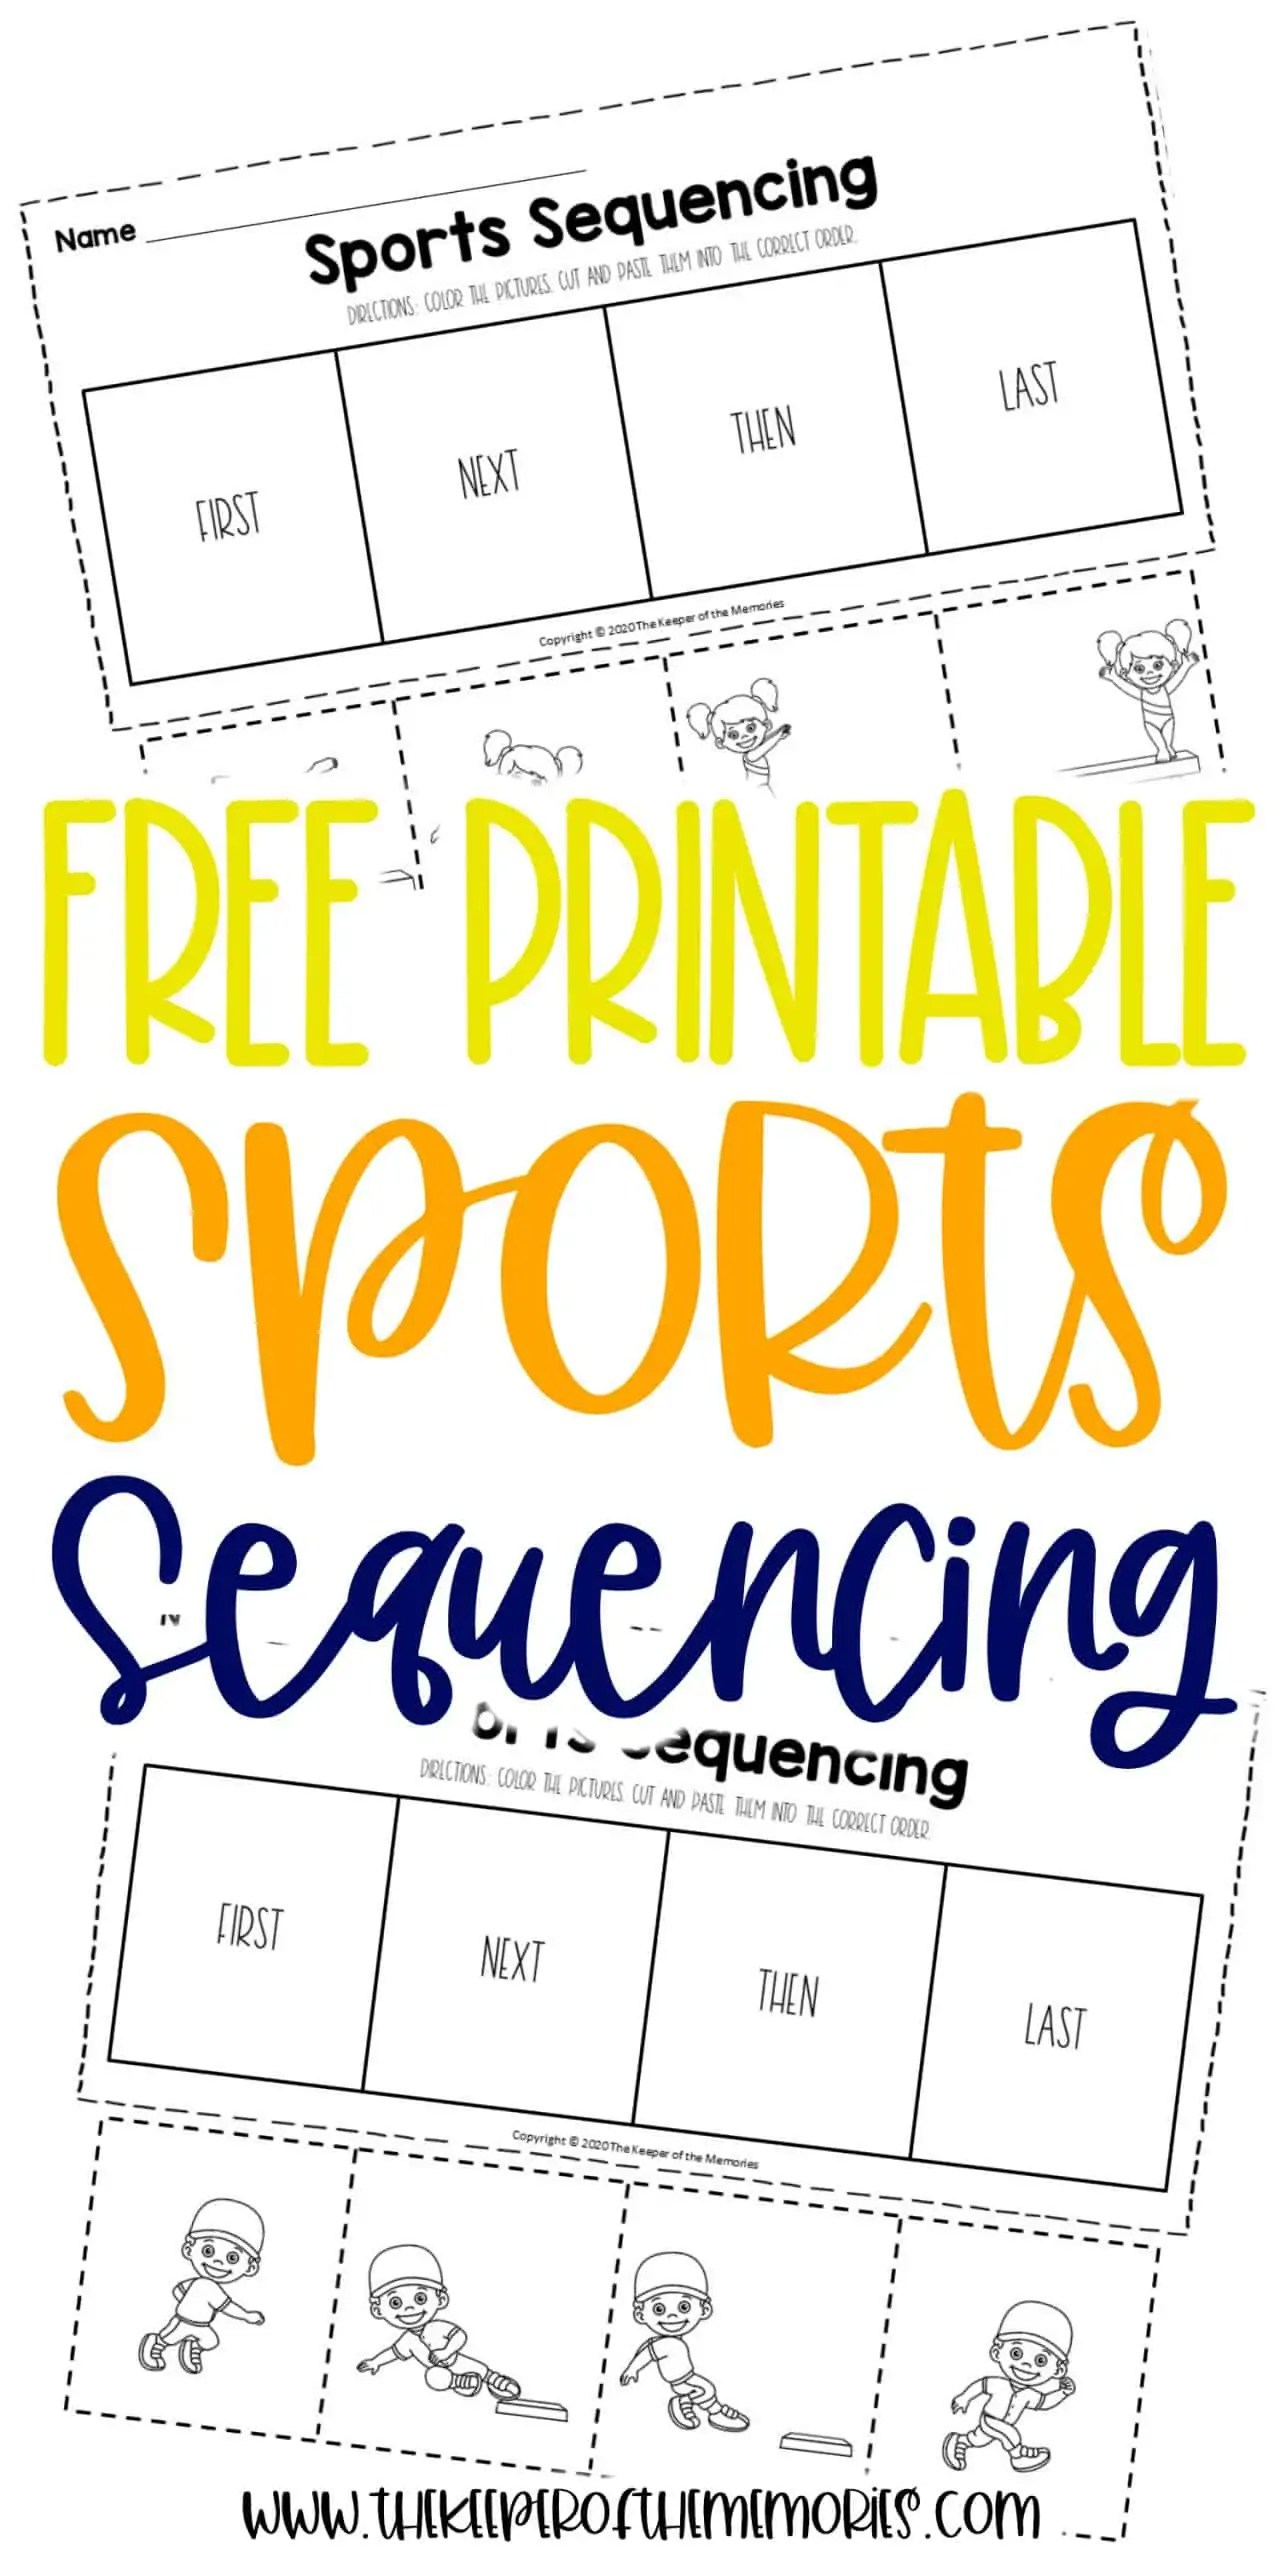 Free Sports Printable Sequencing Worksheets